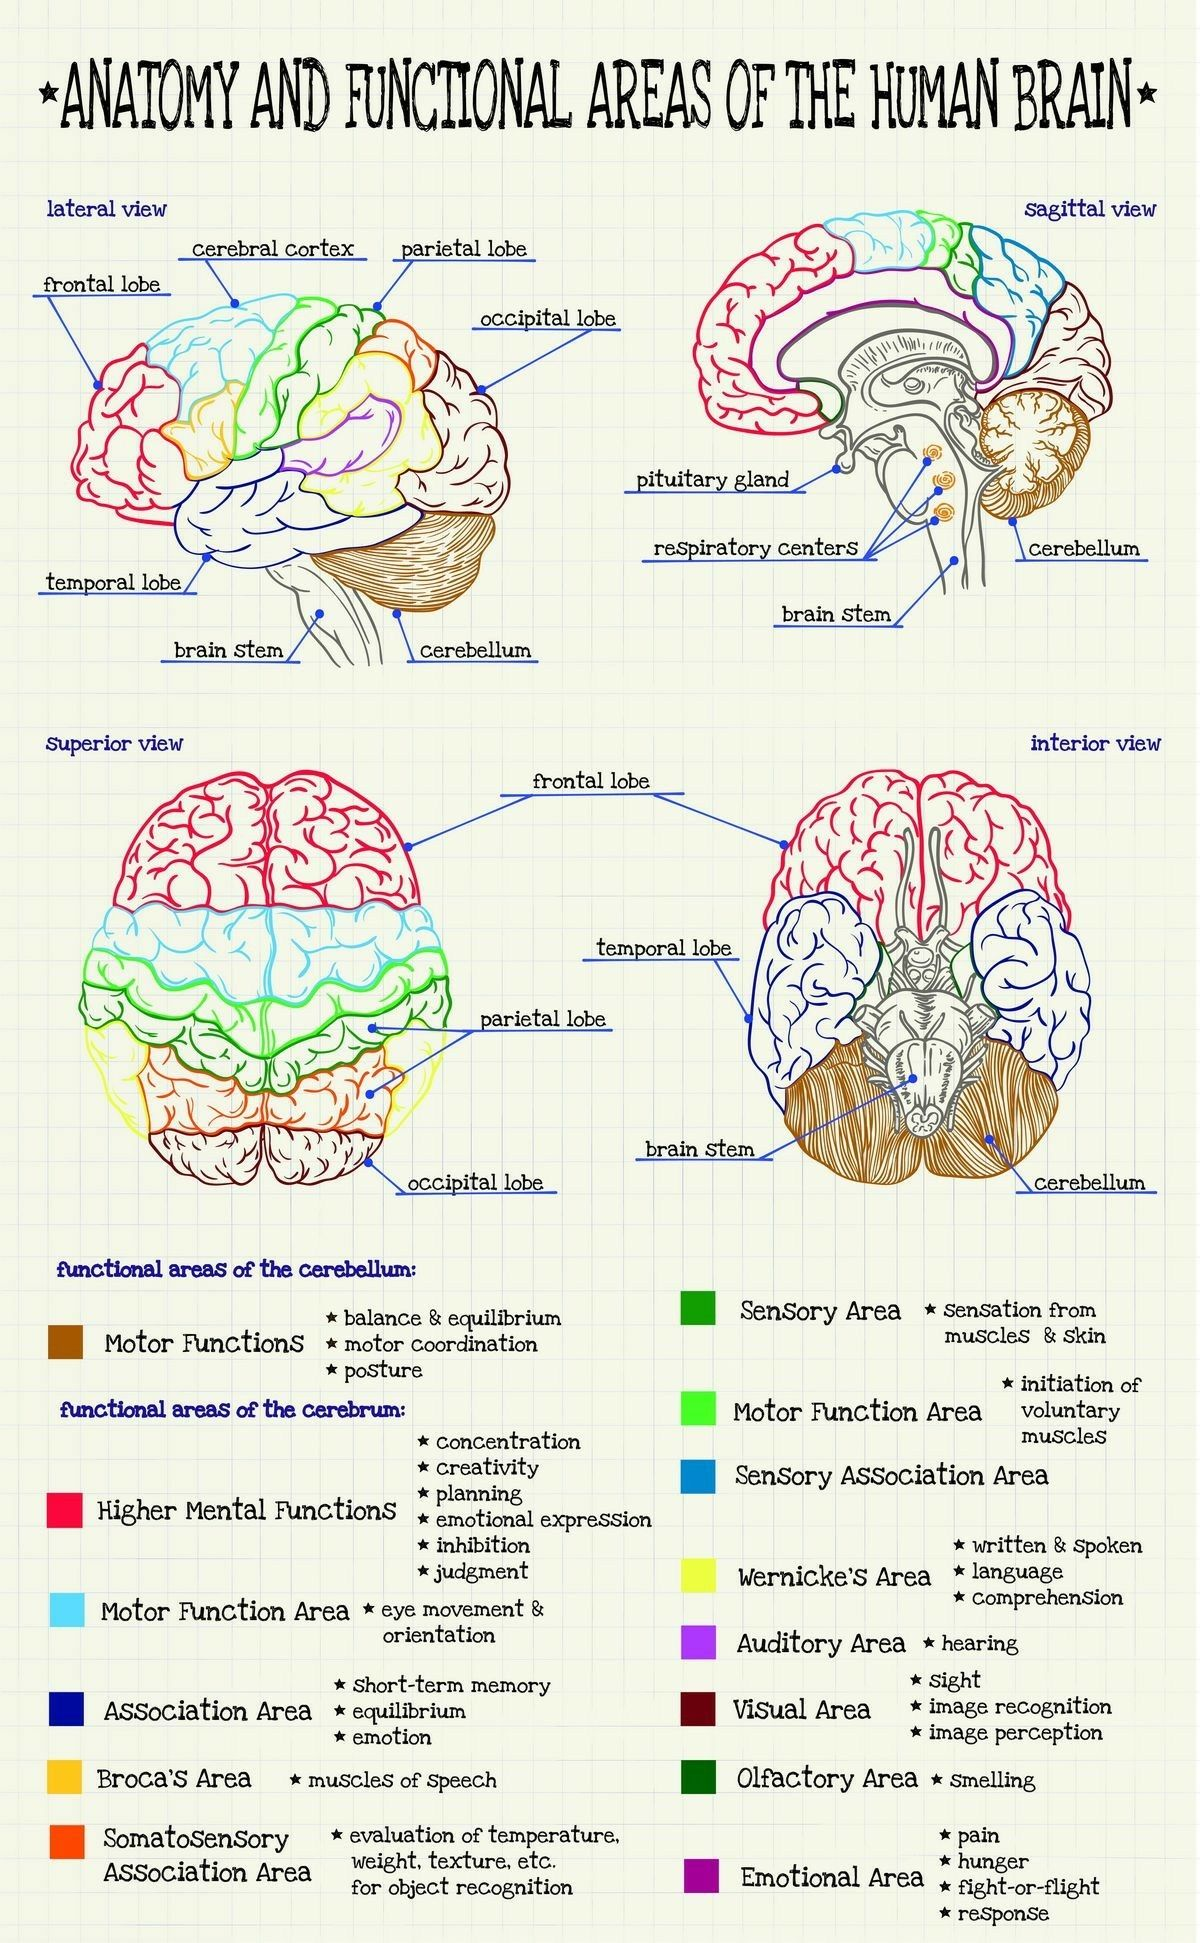 Anatomy and functional areas of the human brain